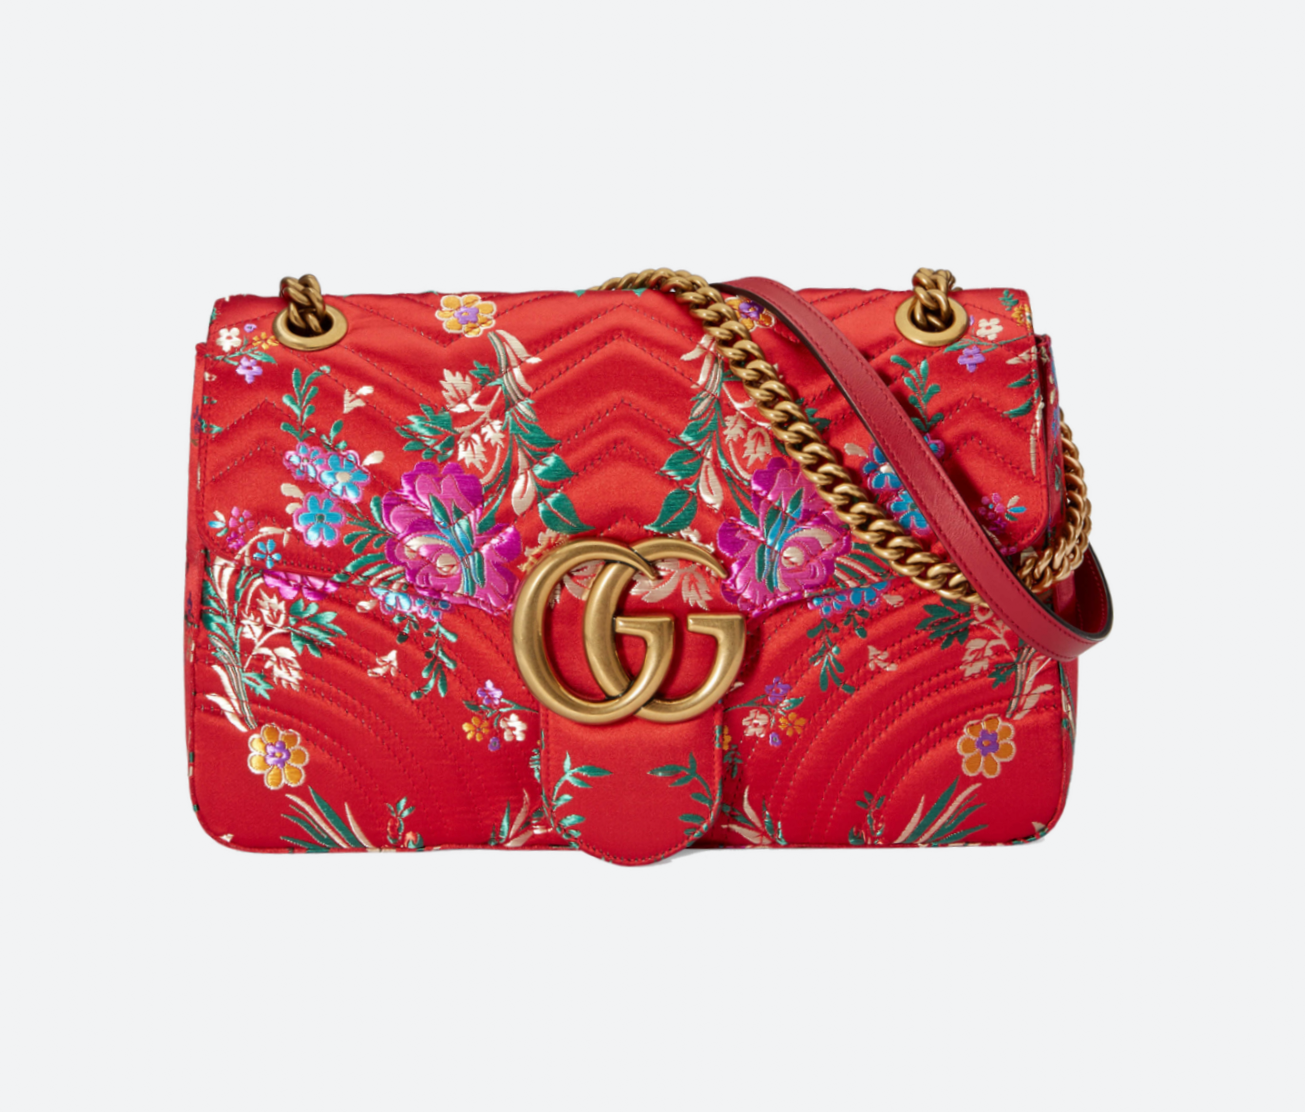 gucci marmont bag.png